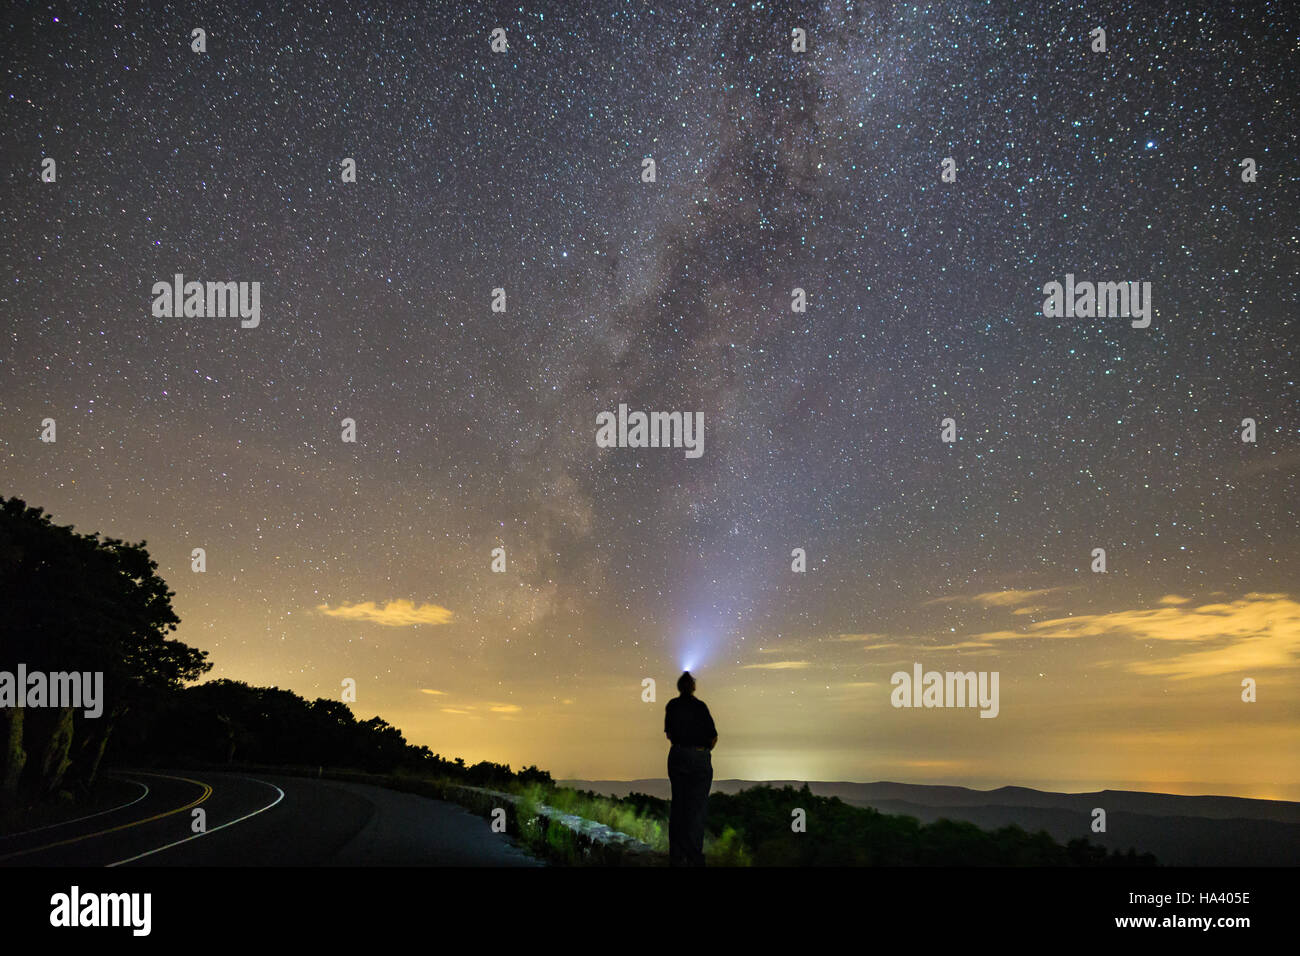 Galactic Selfie. A single, lone person stands staring up at the stars in the night sky along with the Milky Way - Stock Image